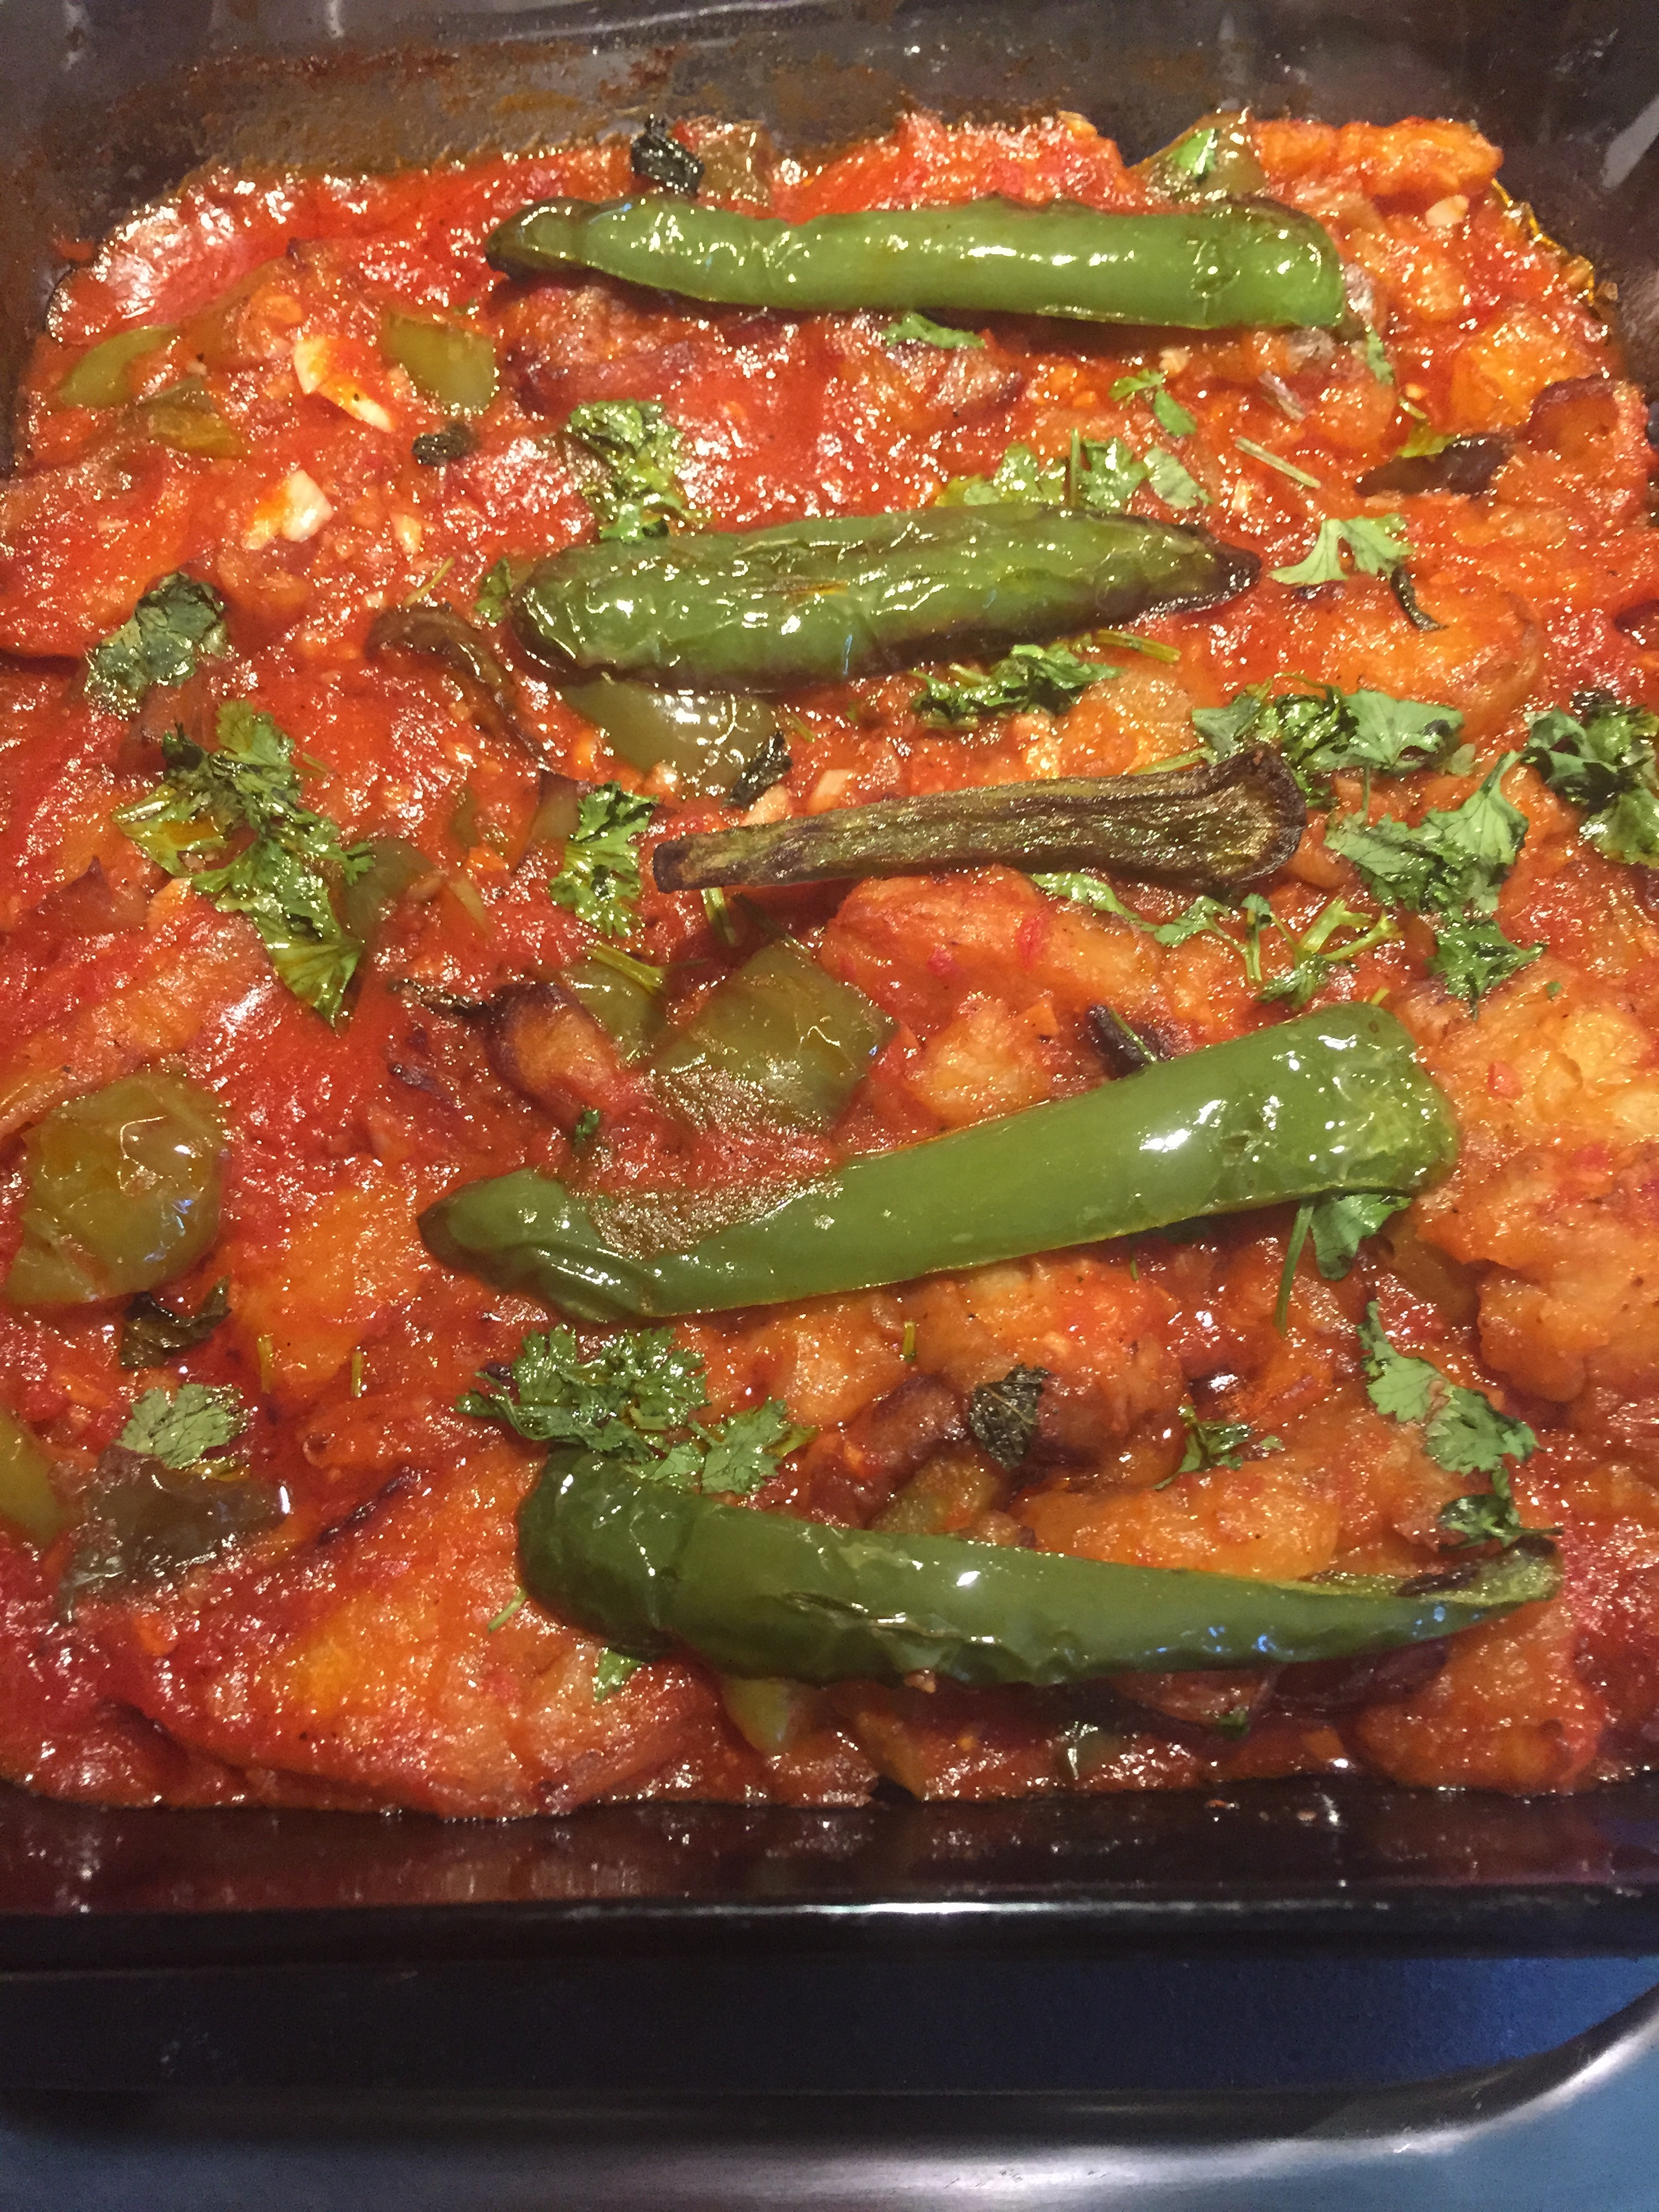 Egyptian moussaka when eggplants meet garlic and tomato sauce img1032 forumfinder Image collections